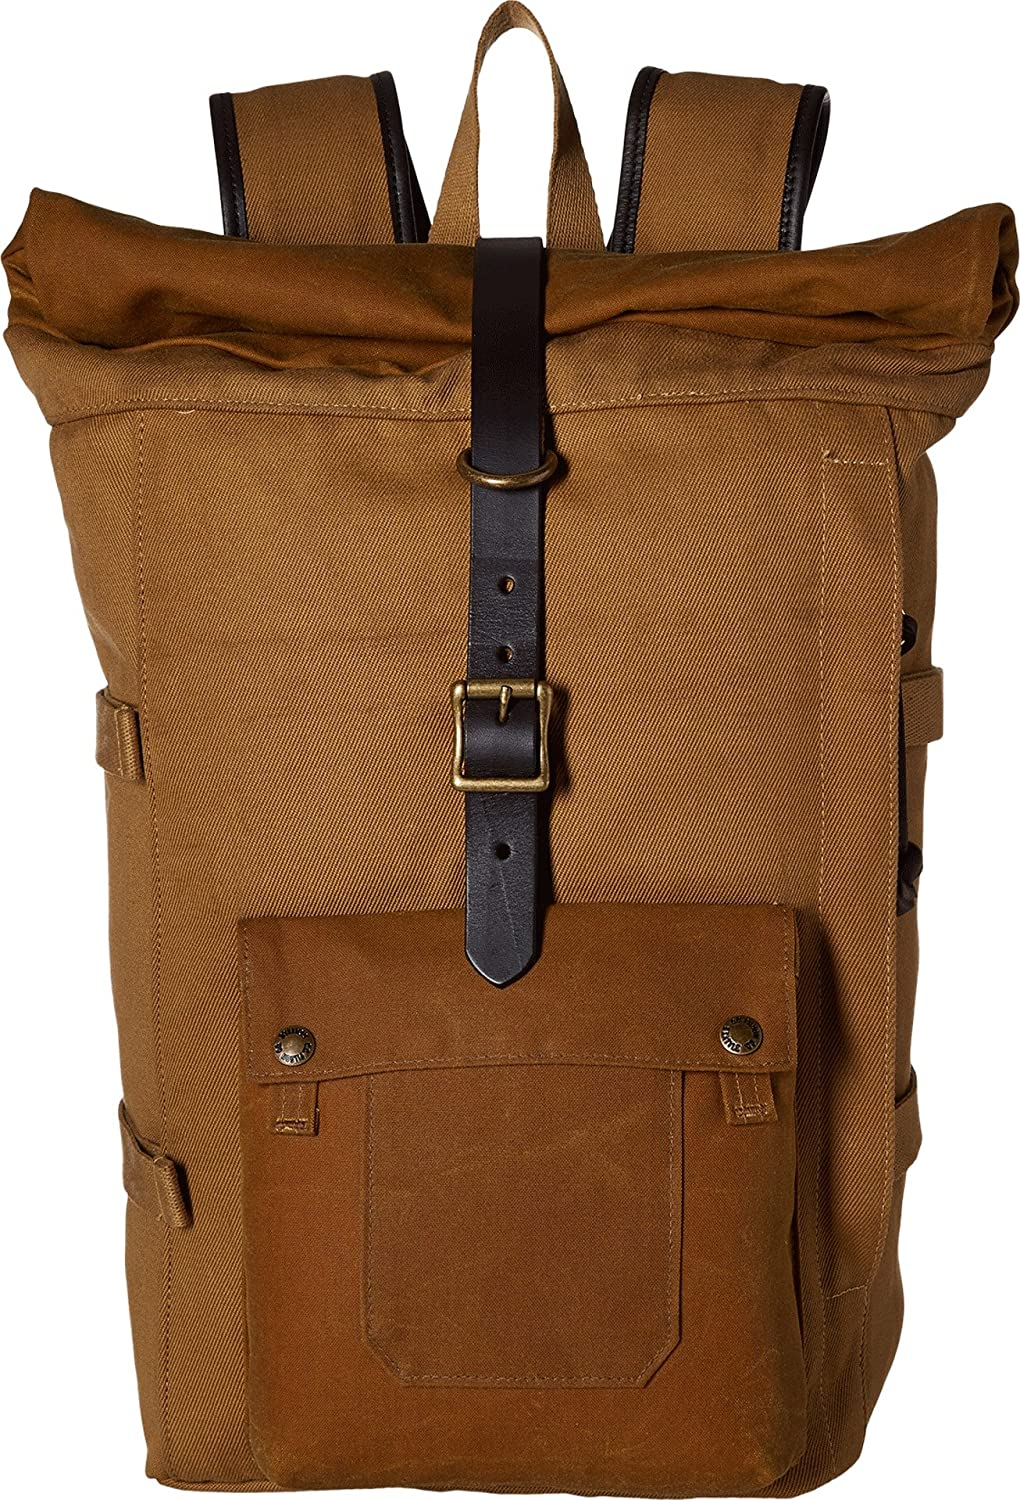 Filson Unisex Rucksack Tan Backpack